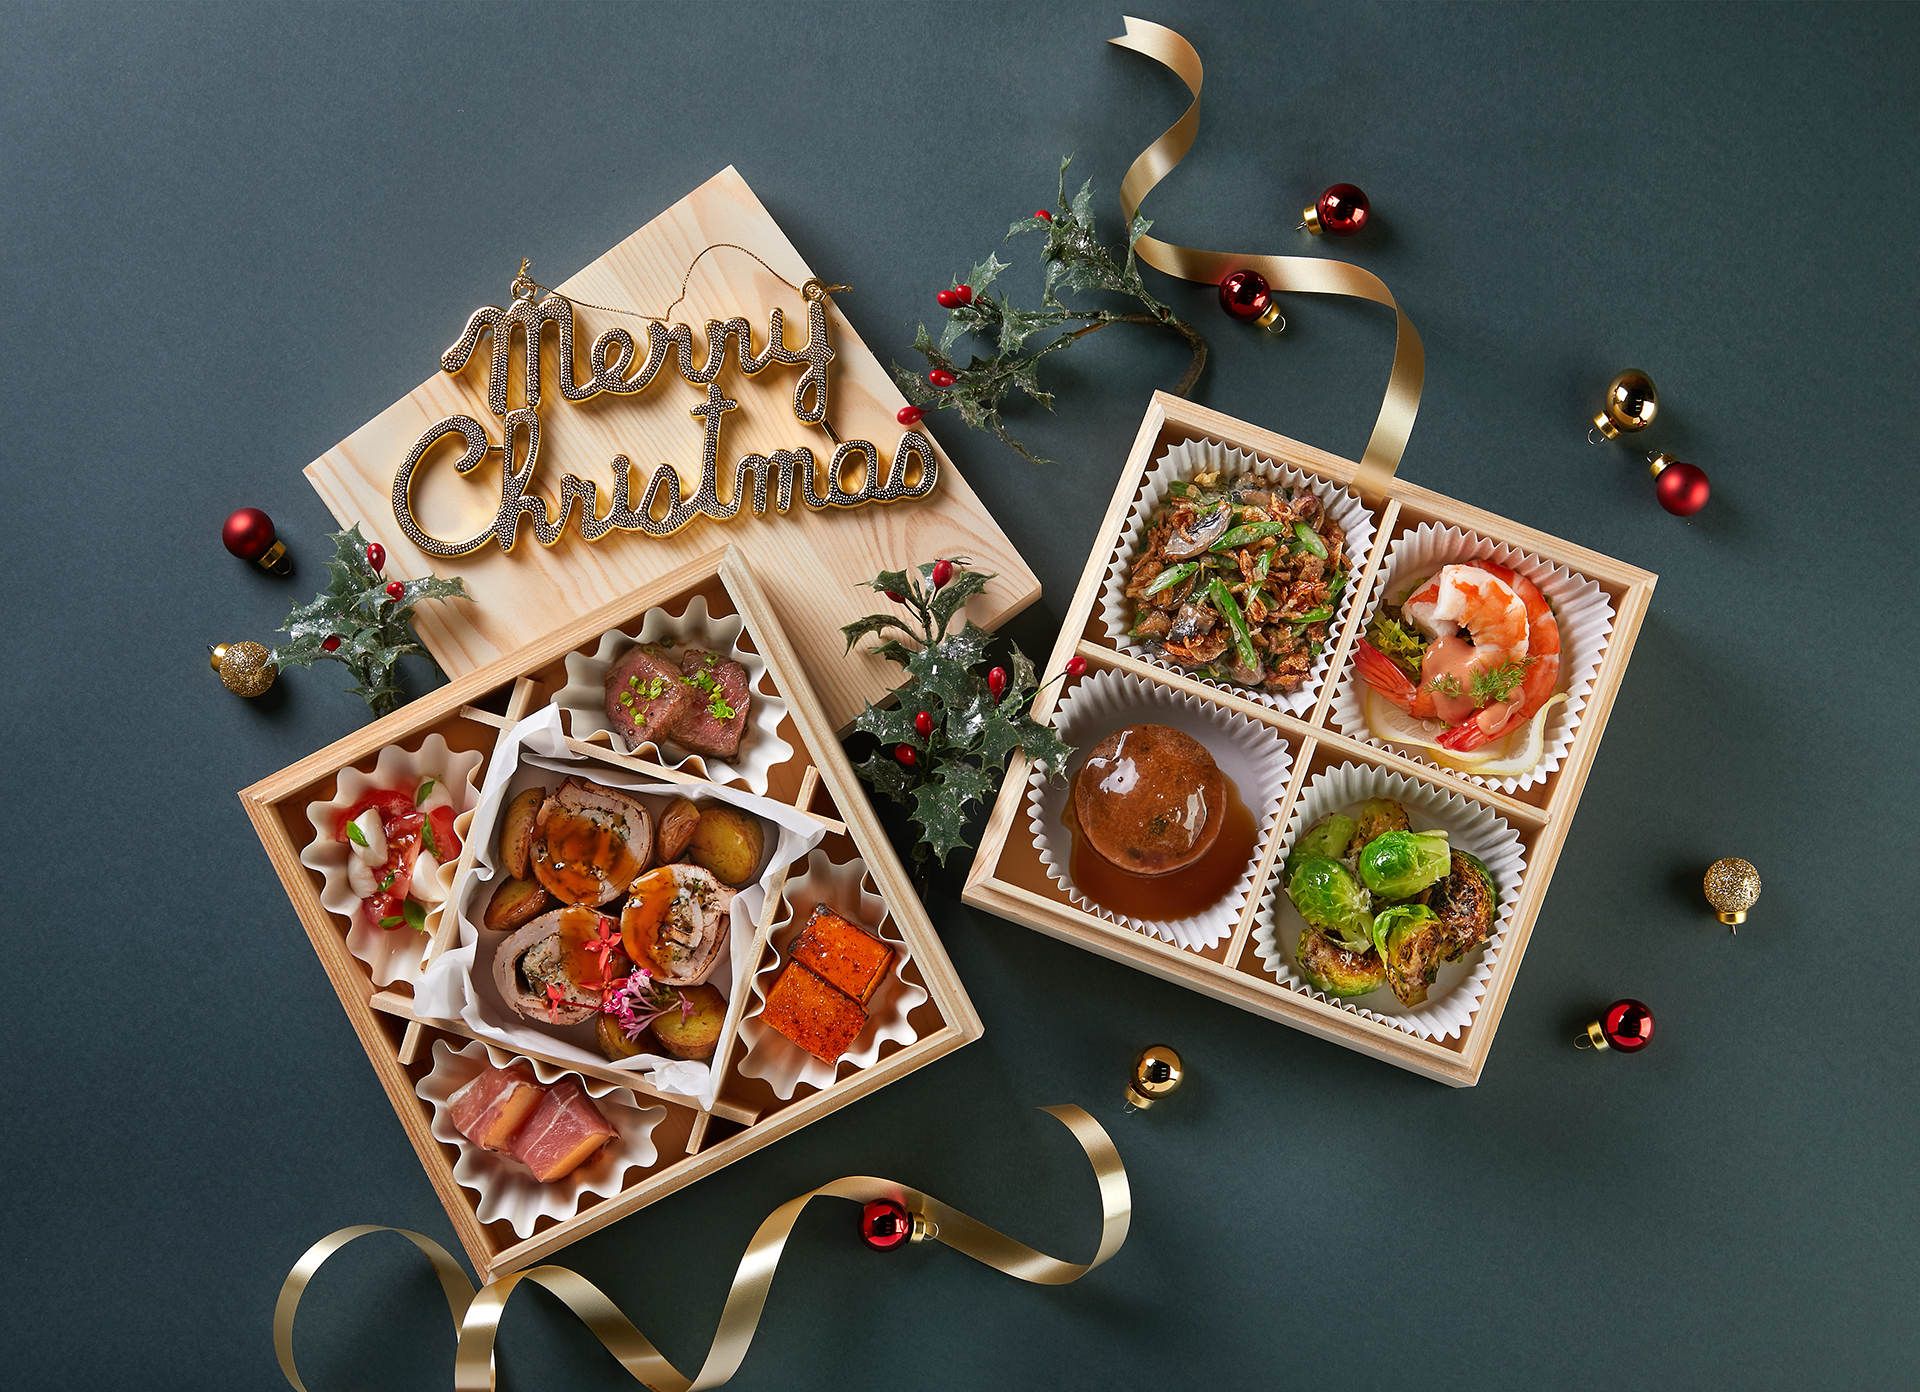 Gourmet Meal in Wooden Bento Boxes Consisting of 9 Dishes on-top a Christmas Festive Background